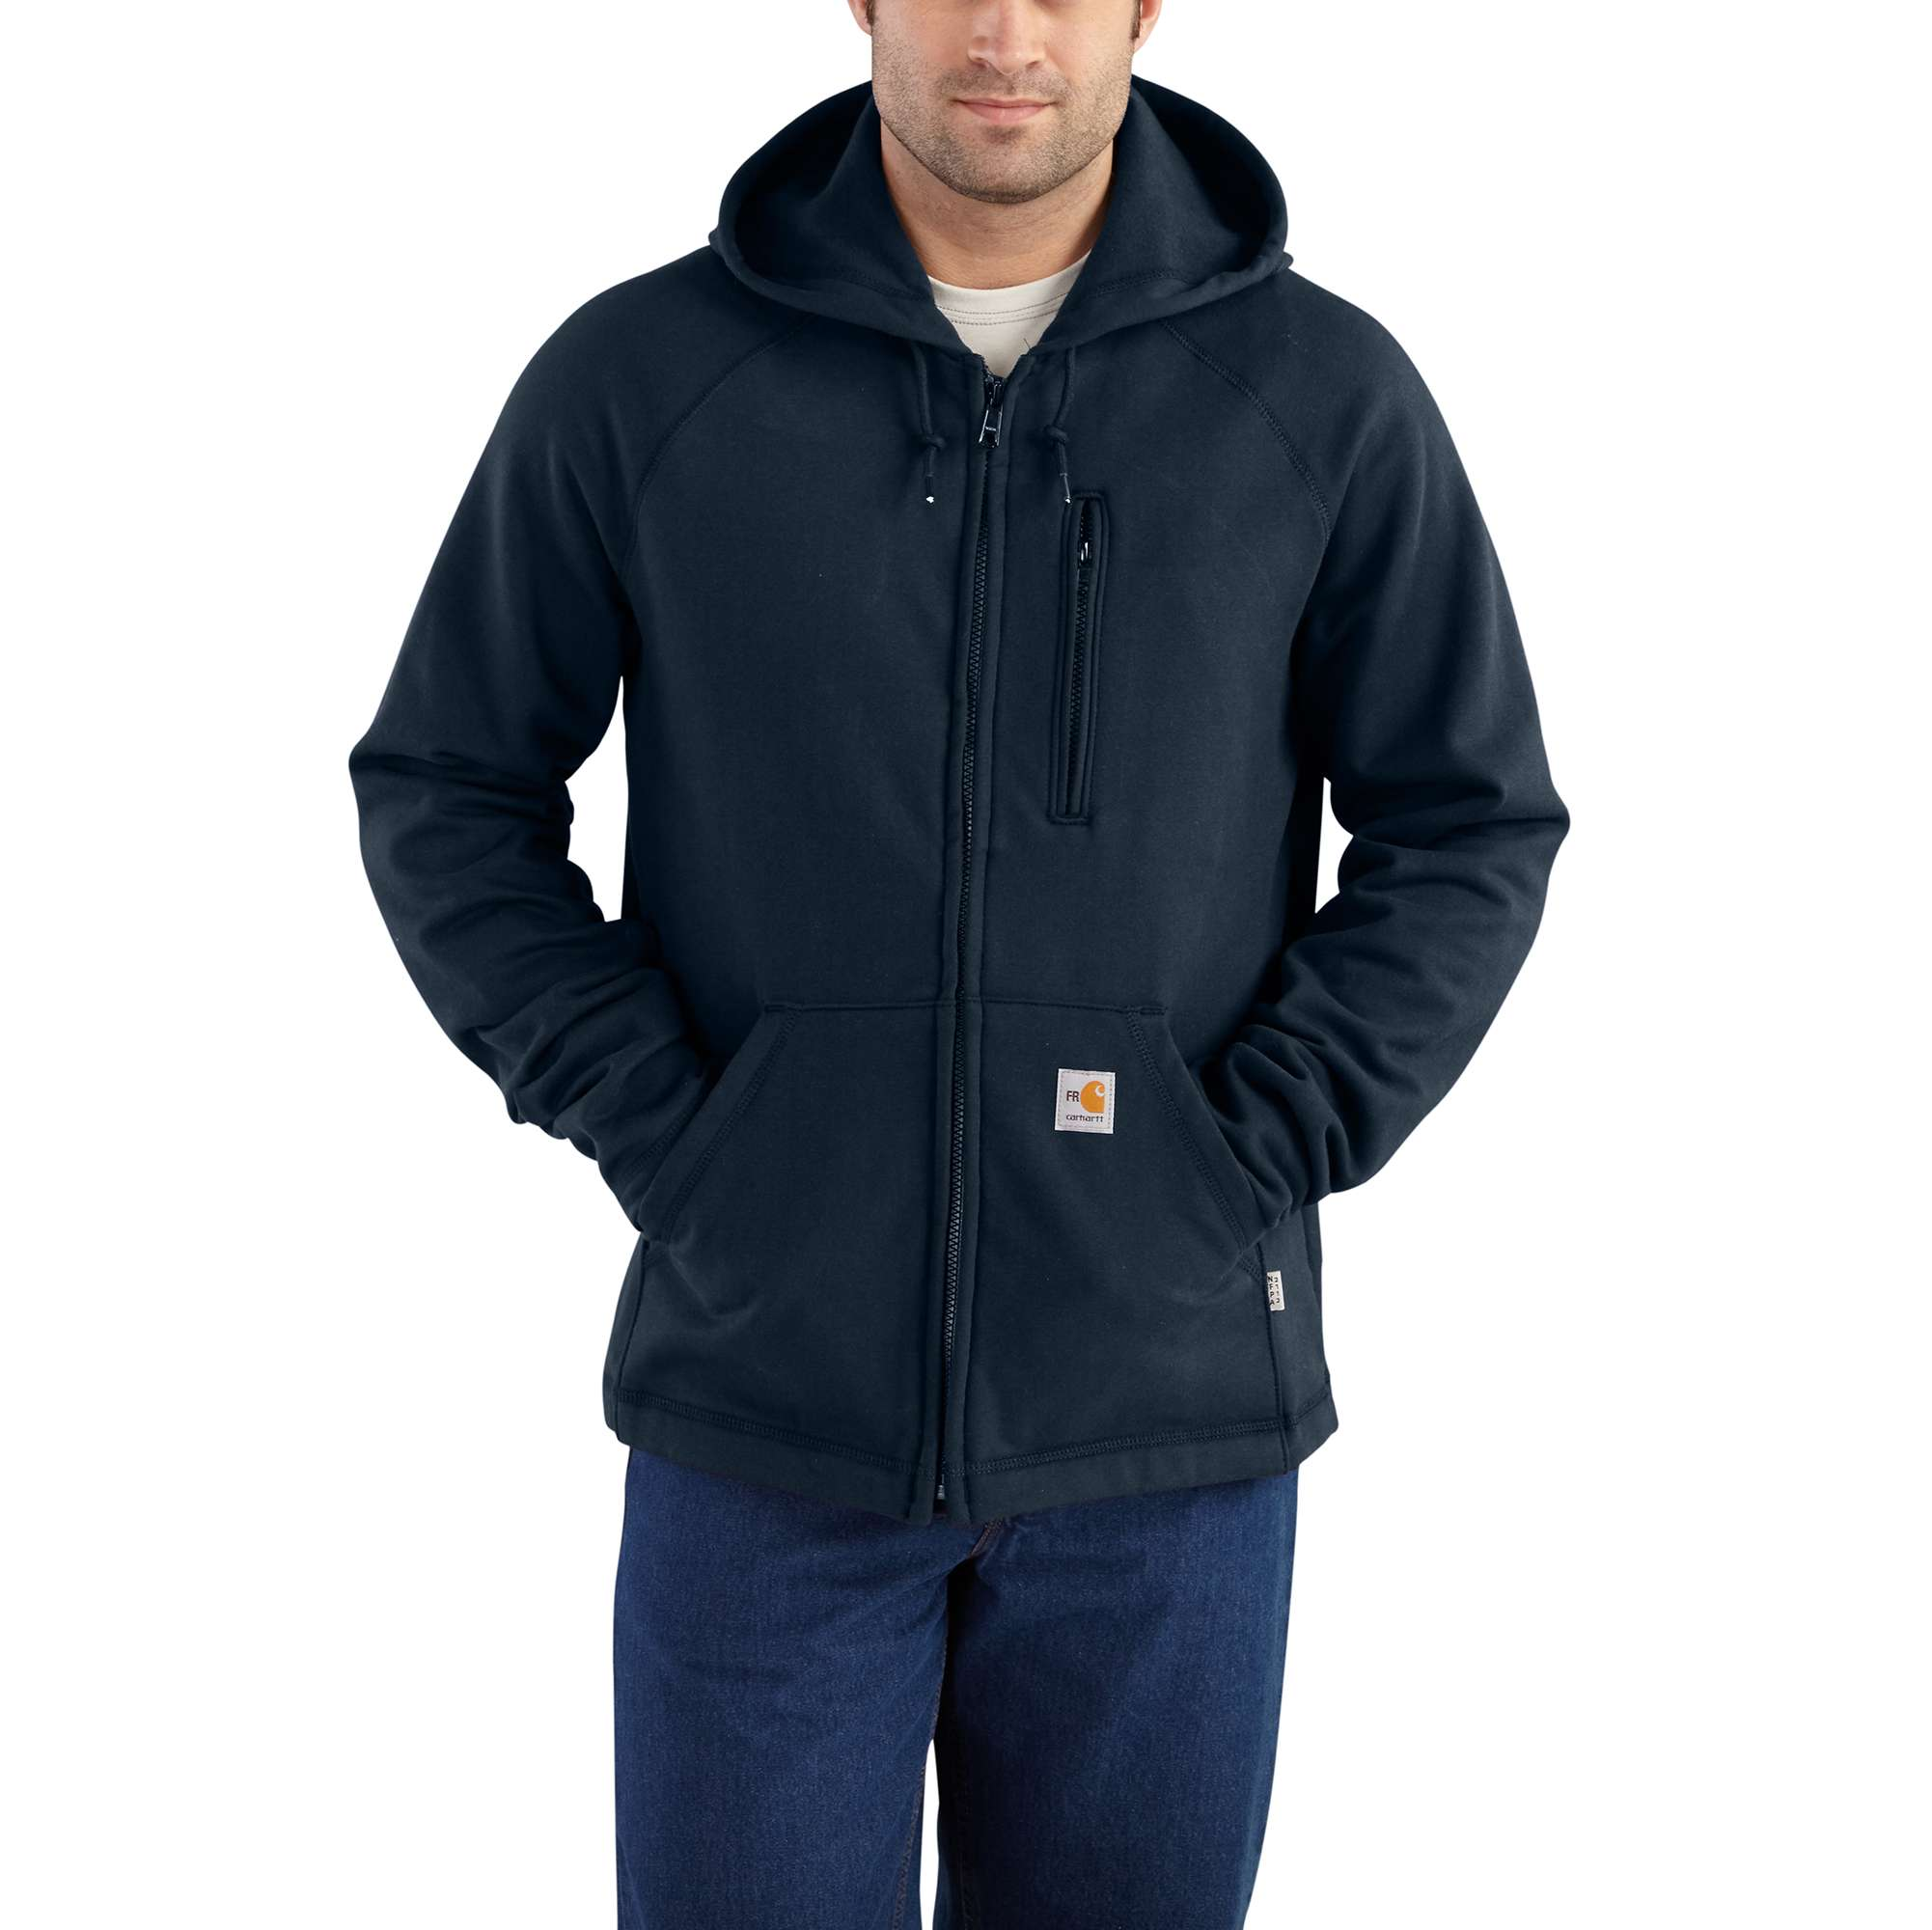 Carhartt Flame-Resistant Carhartt Force Hooded Full-Zip Fleece